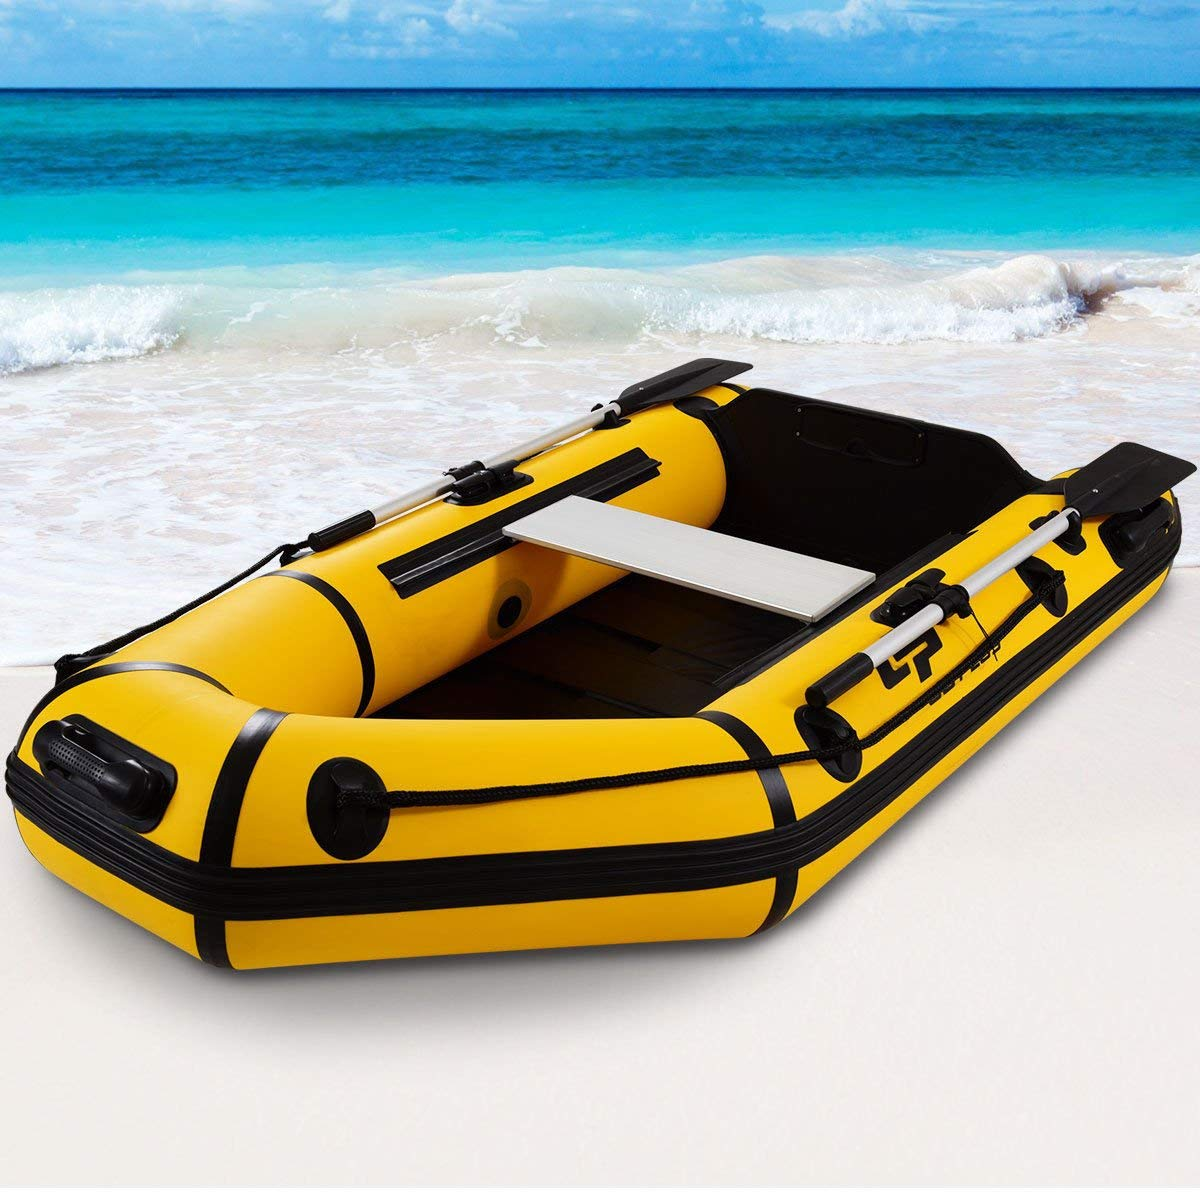 Goplus 2 or 4-Person Inflatable Dinghy Boat Fishing Tender Raft Deep Bottom and Trolling Motor Transom